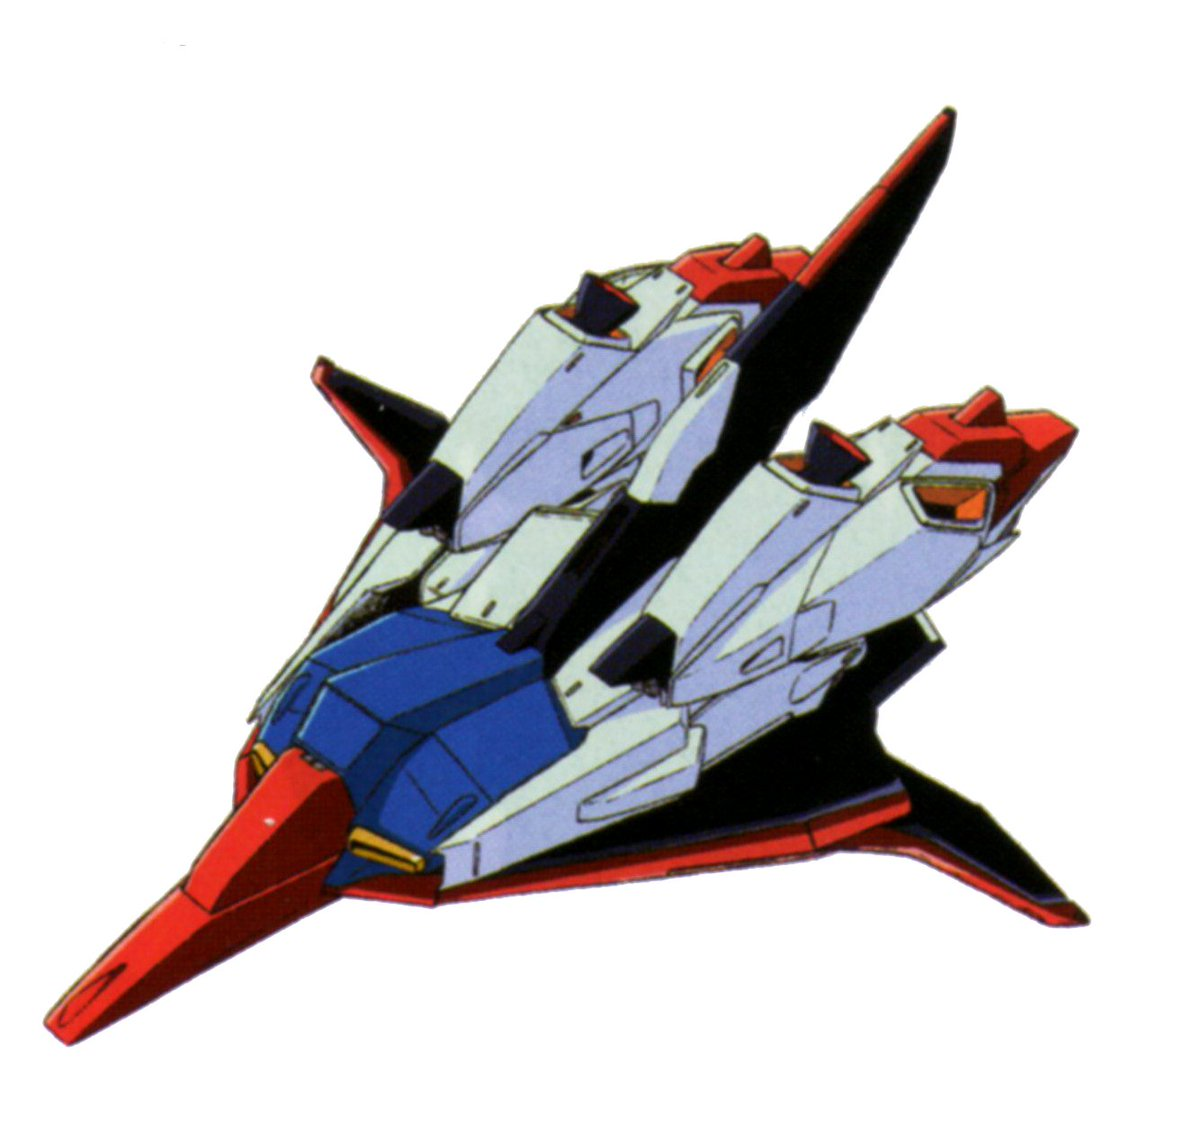 Pick your mobile suit transformed modeAn actual transformation or just rotate the torso, put a shield over it and call it a day?